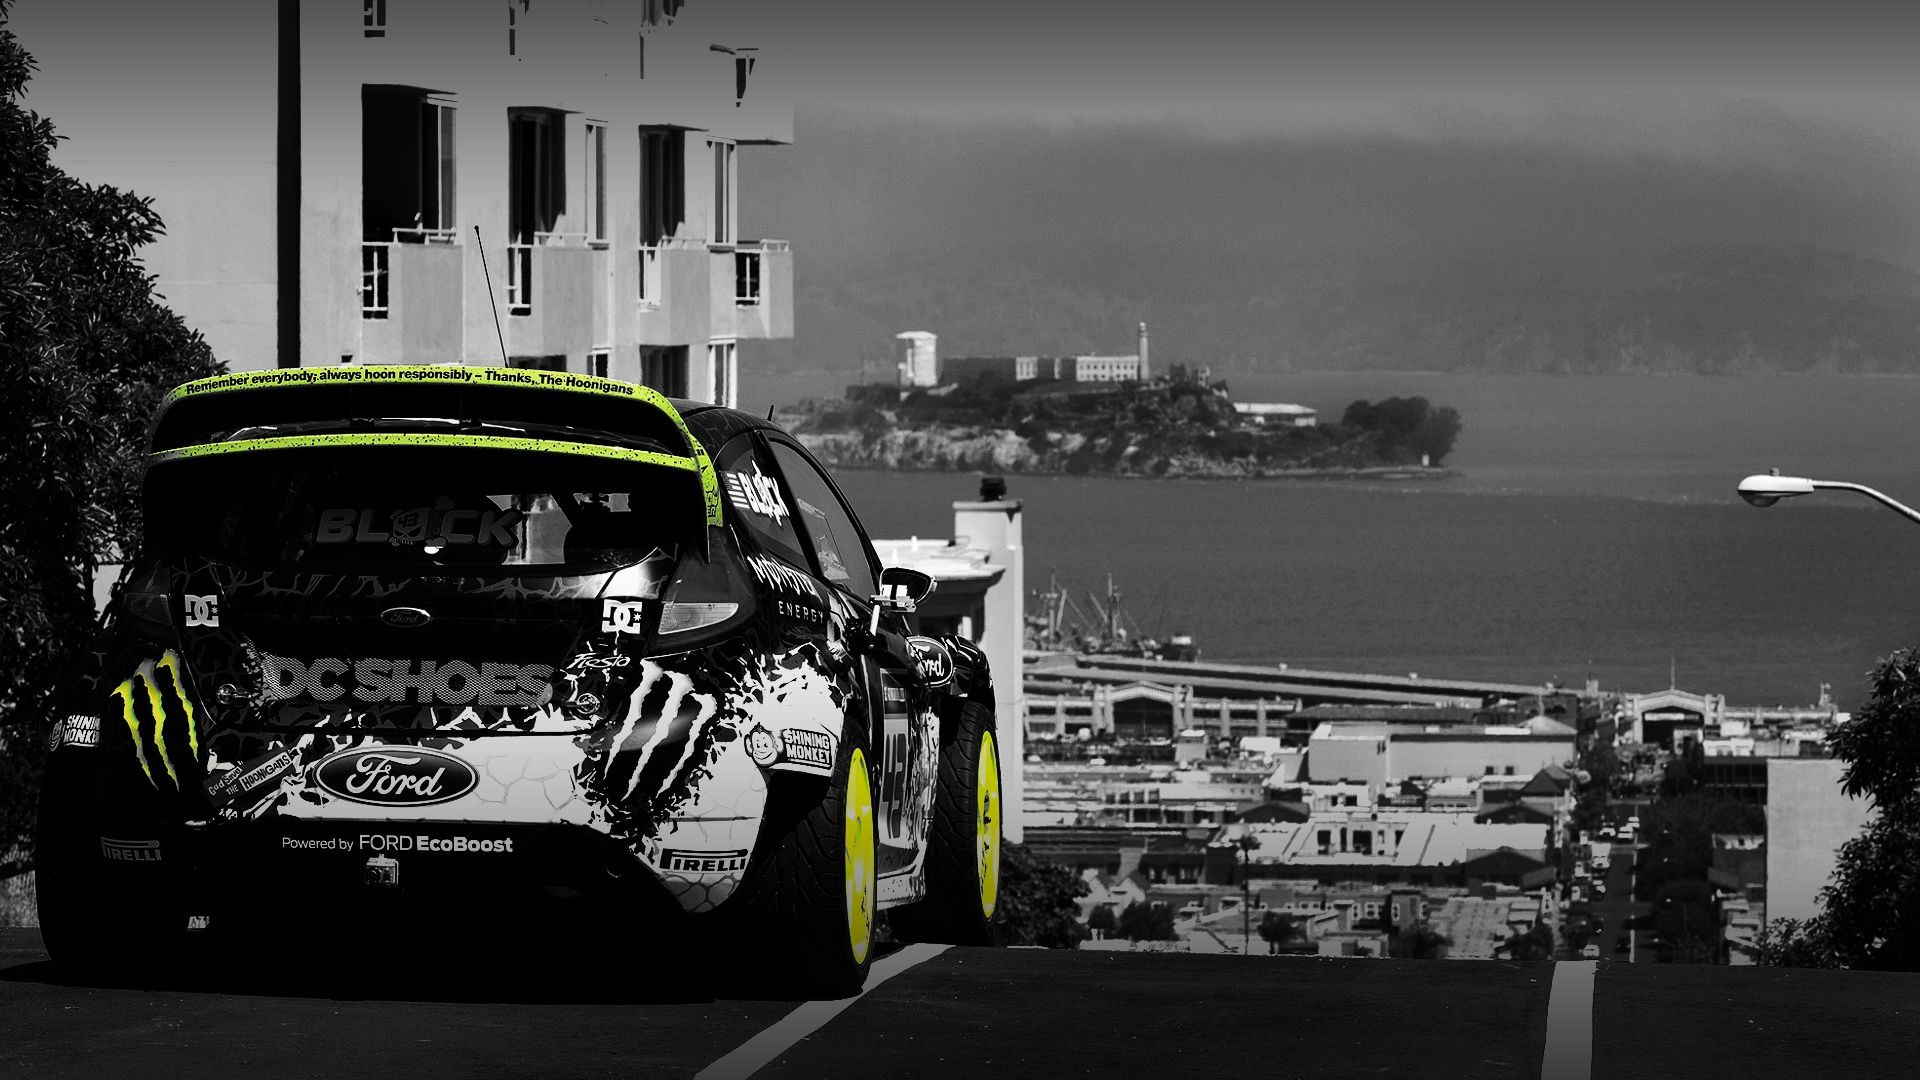 1920x1080 Ken Block Wallpapers - Wallpaper Cave | Epic Car Wallpapers | Pinterest |  Ken block and Wallpaper